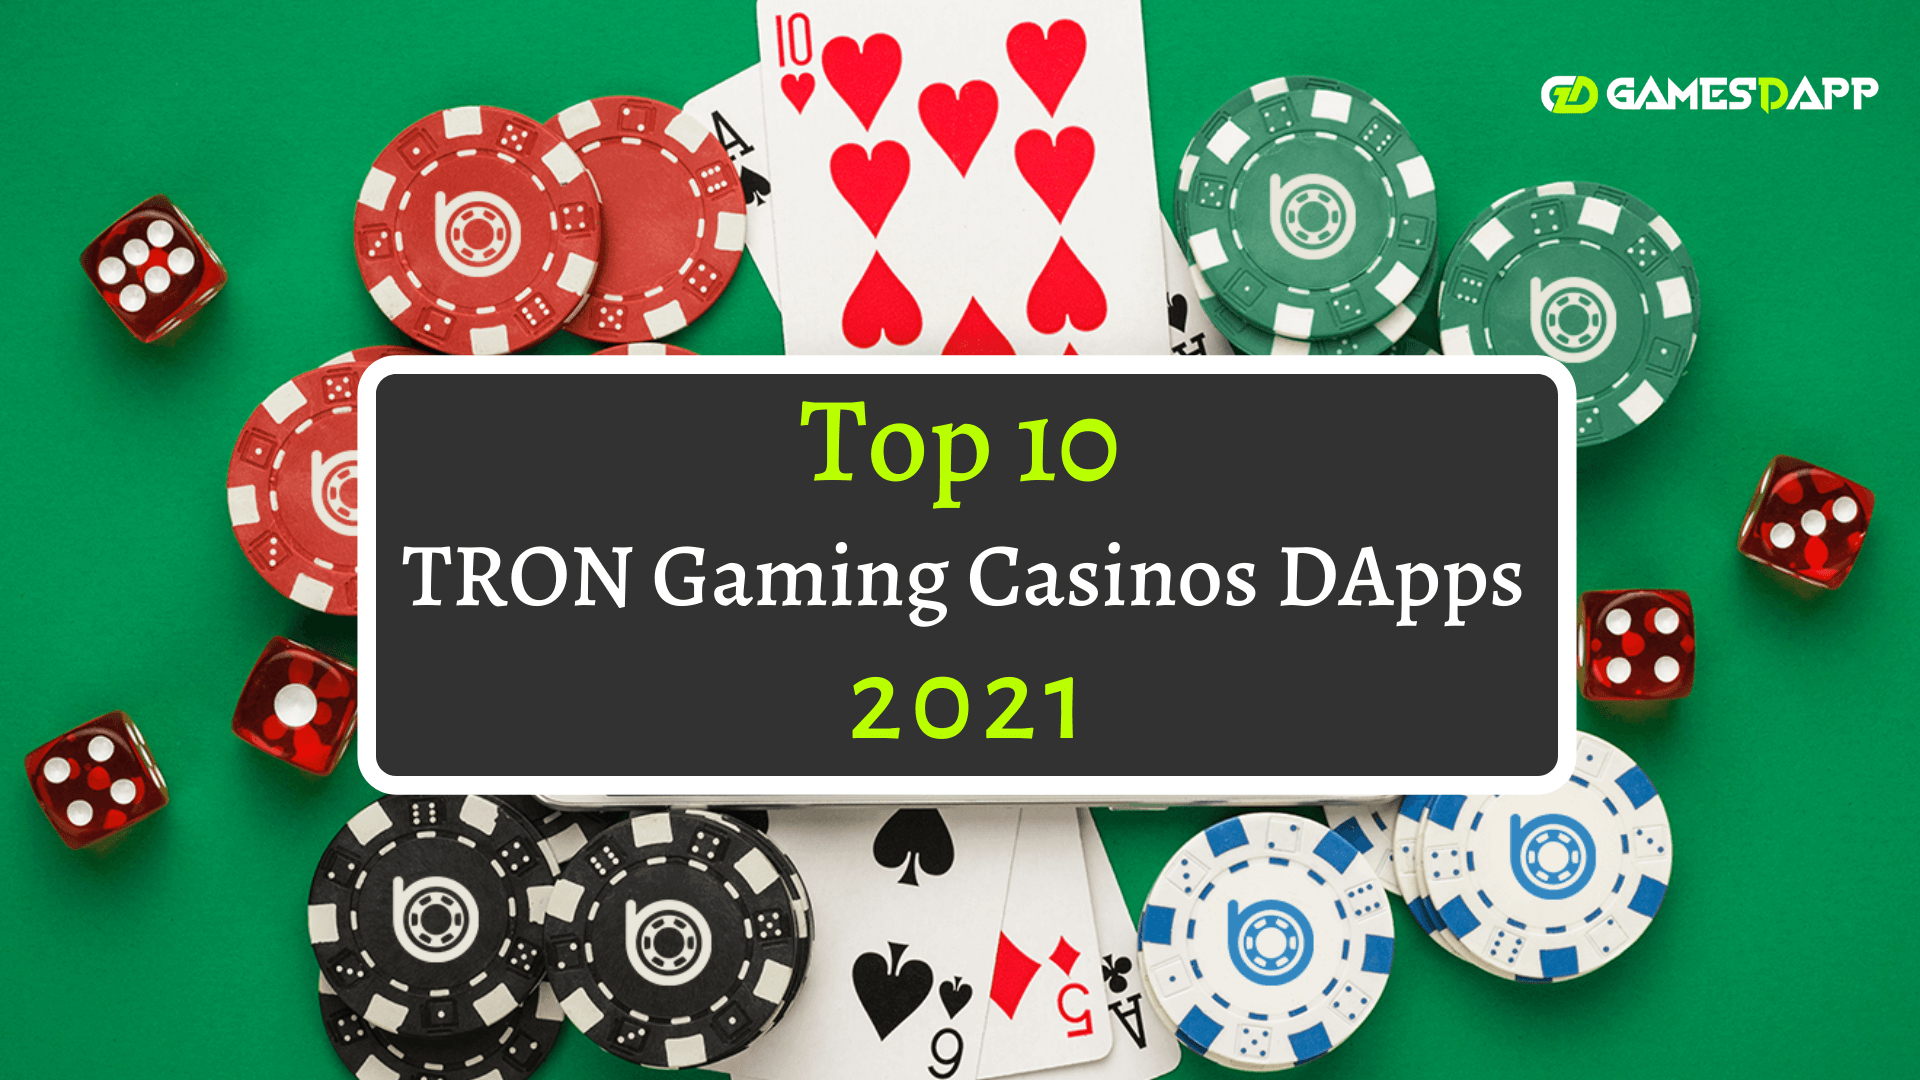 Top 10 TRON Gaming Casinos DApps 2021